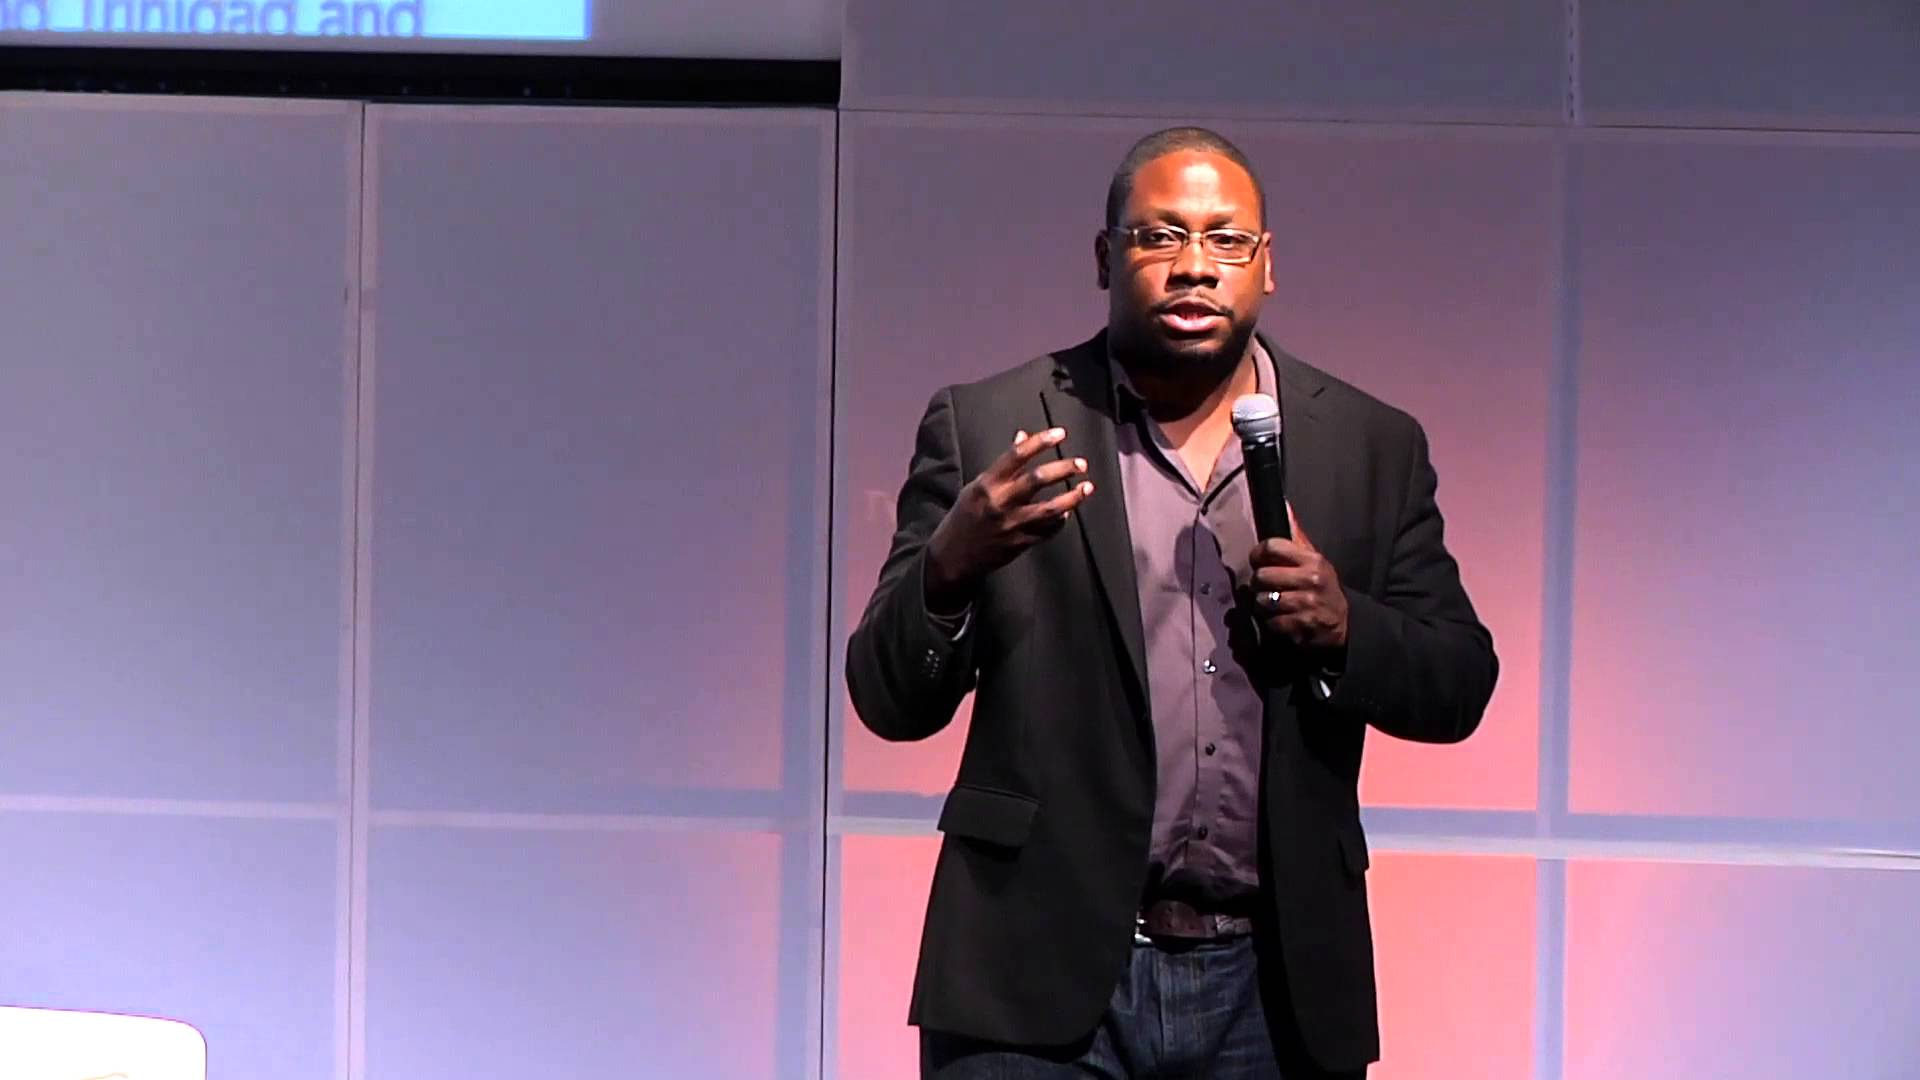 Jon Gosier Black Tech Week 2015